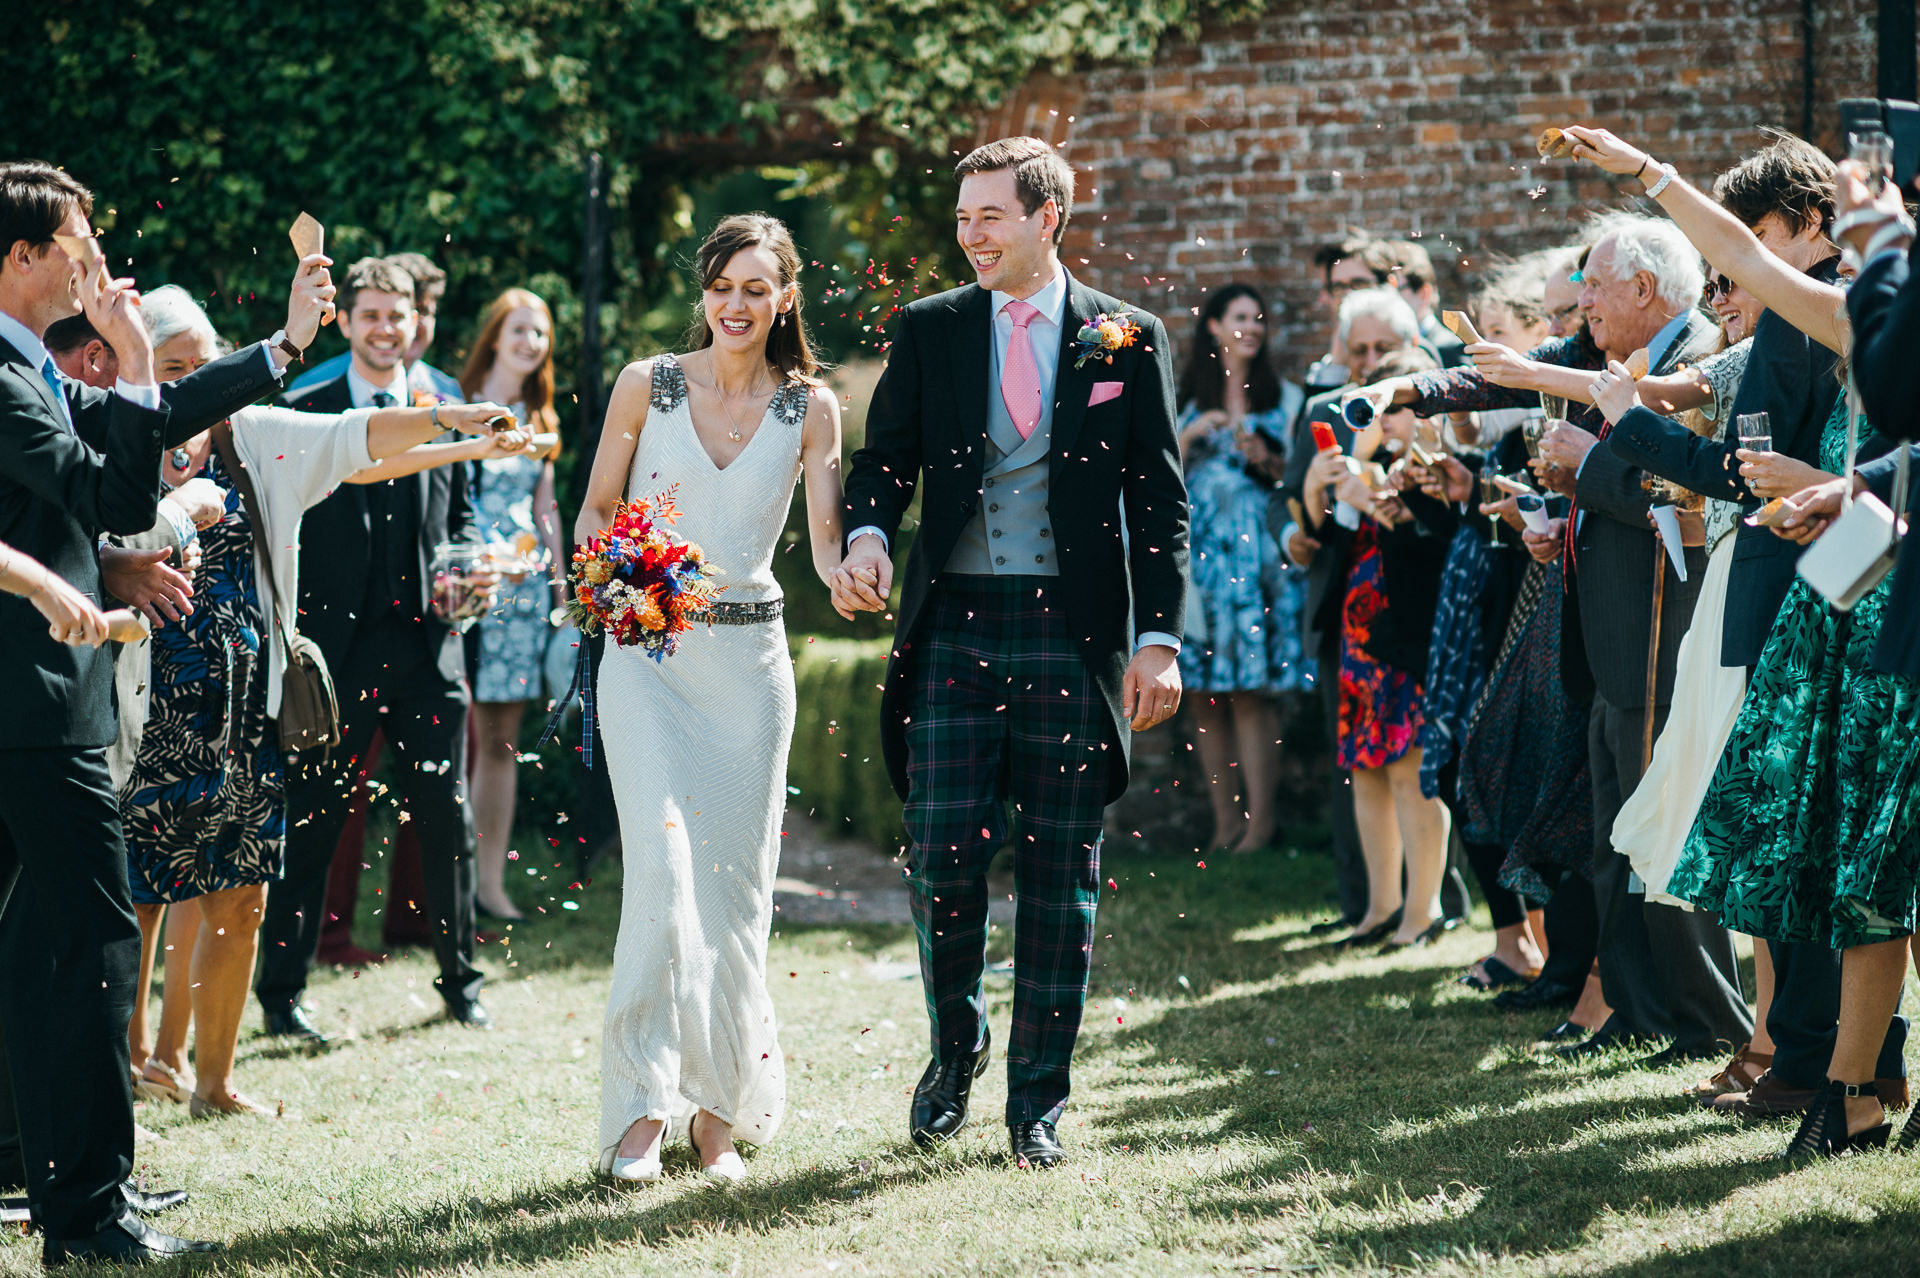 Dunster Tithe barn wedding confetti